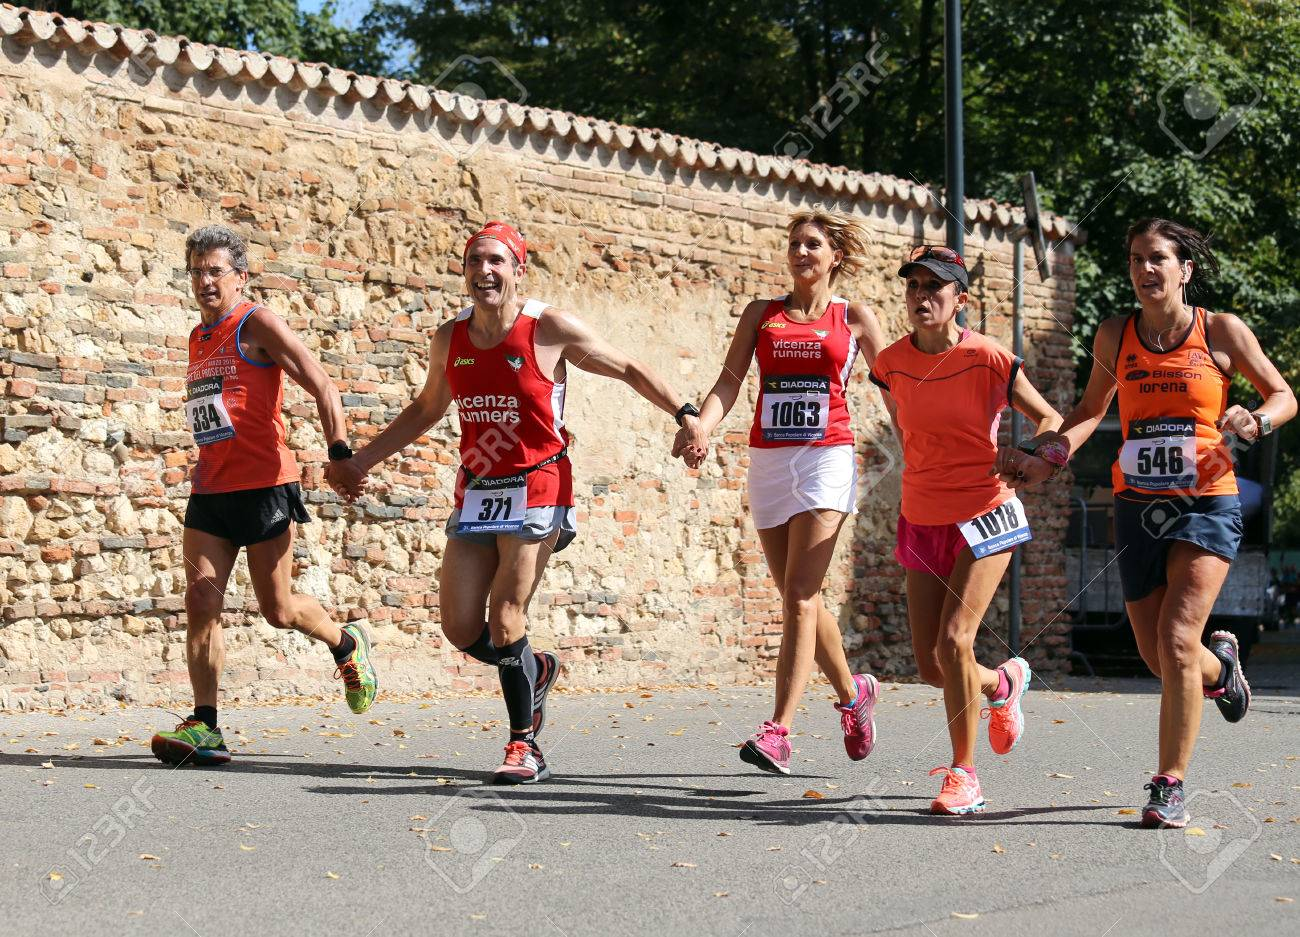 """Vicenza, Italy. 20th September 2015. Marathon runners during the race called """"Mezza di Vicenza"""" in city street of Vicenza in Northern Italy.The runners have raced meters 21097 - 45926202"""